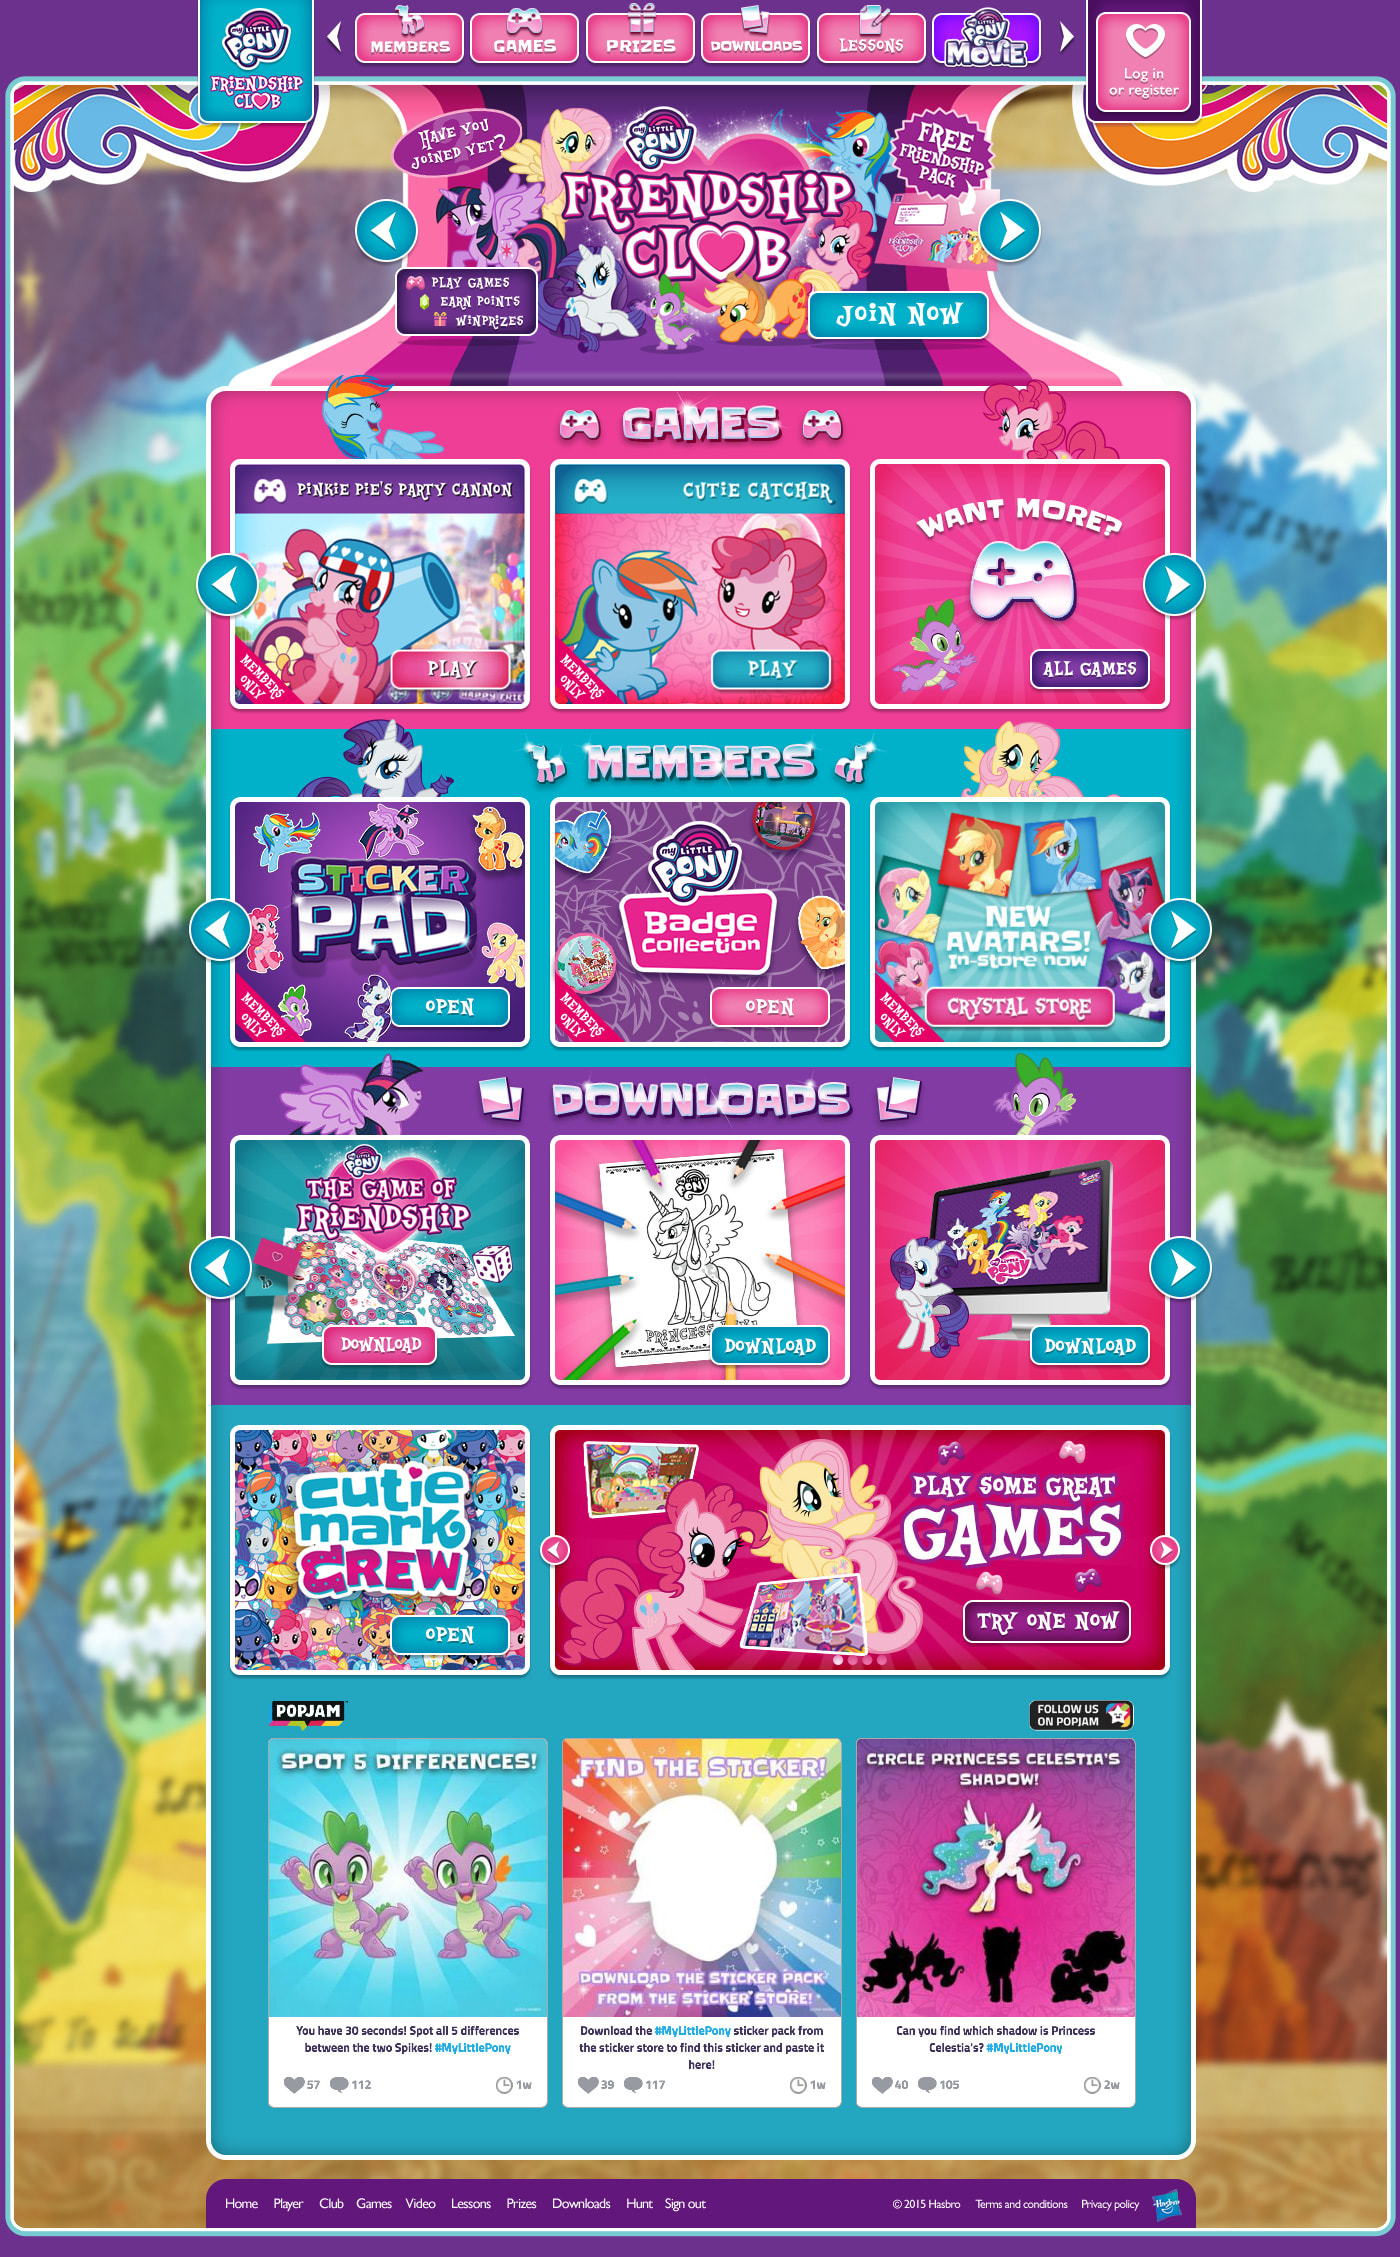 Website and Games - My Little Pony: Friendship Club